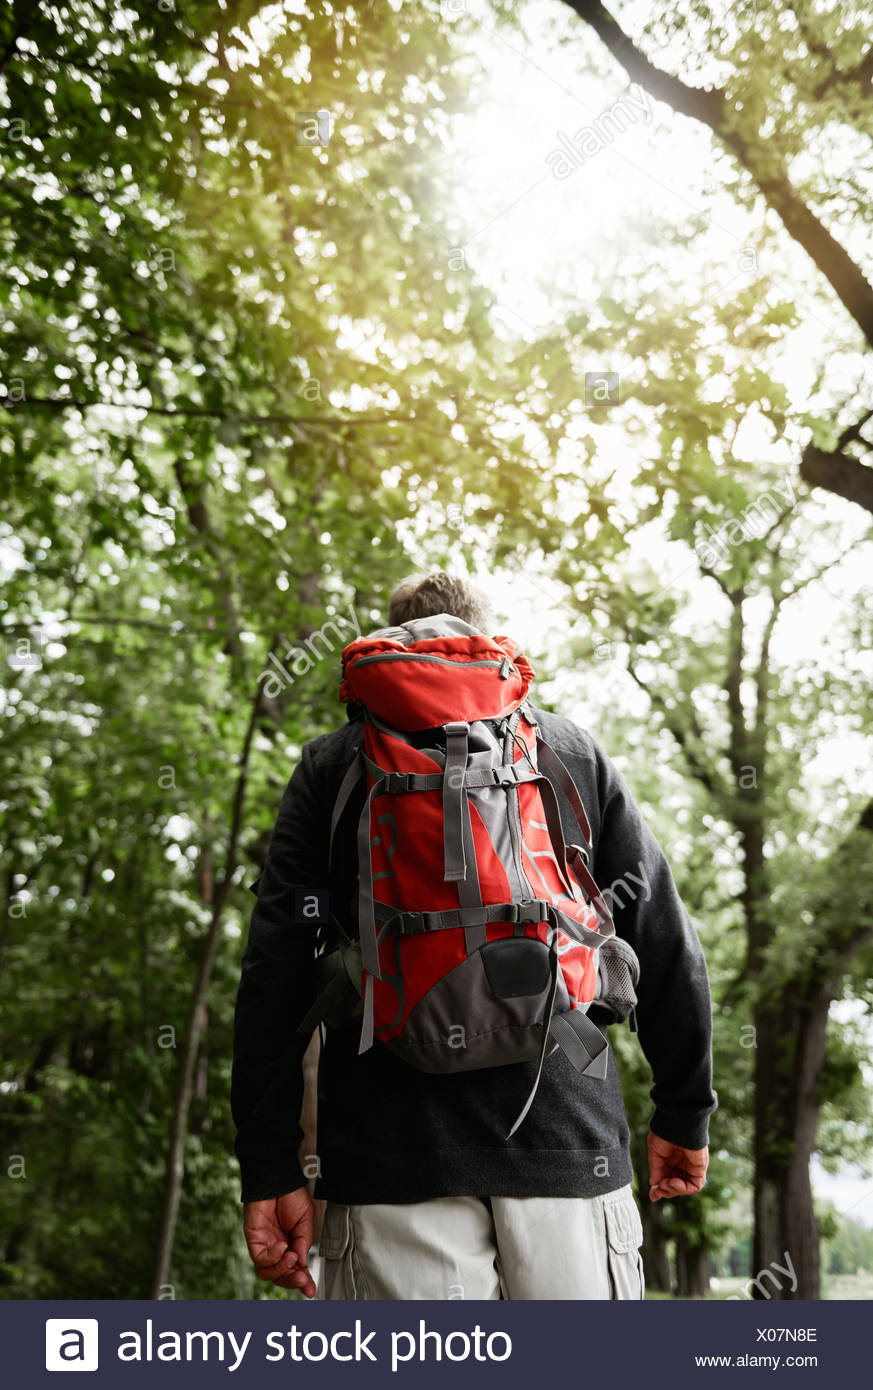 Senior man walking in forest, carrying backpack, rear view - Stock Image